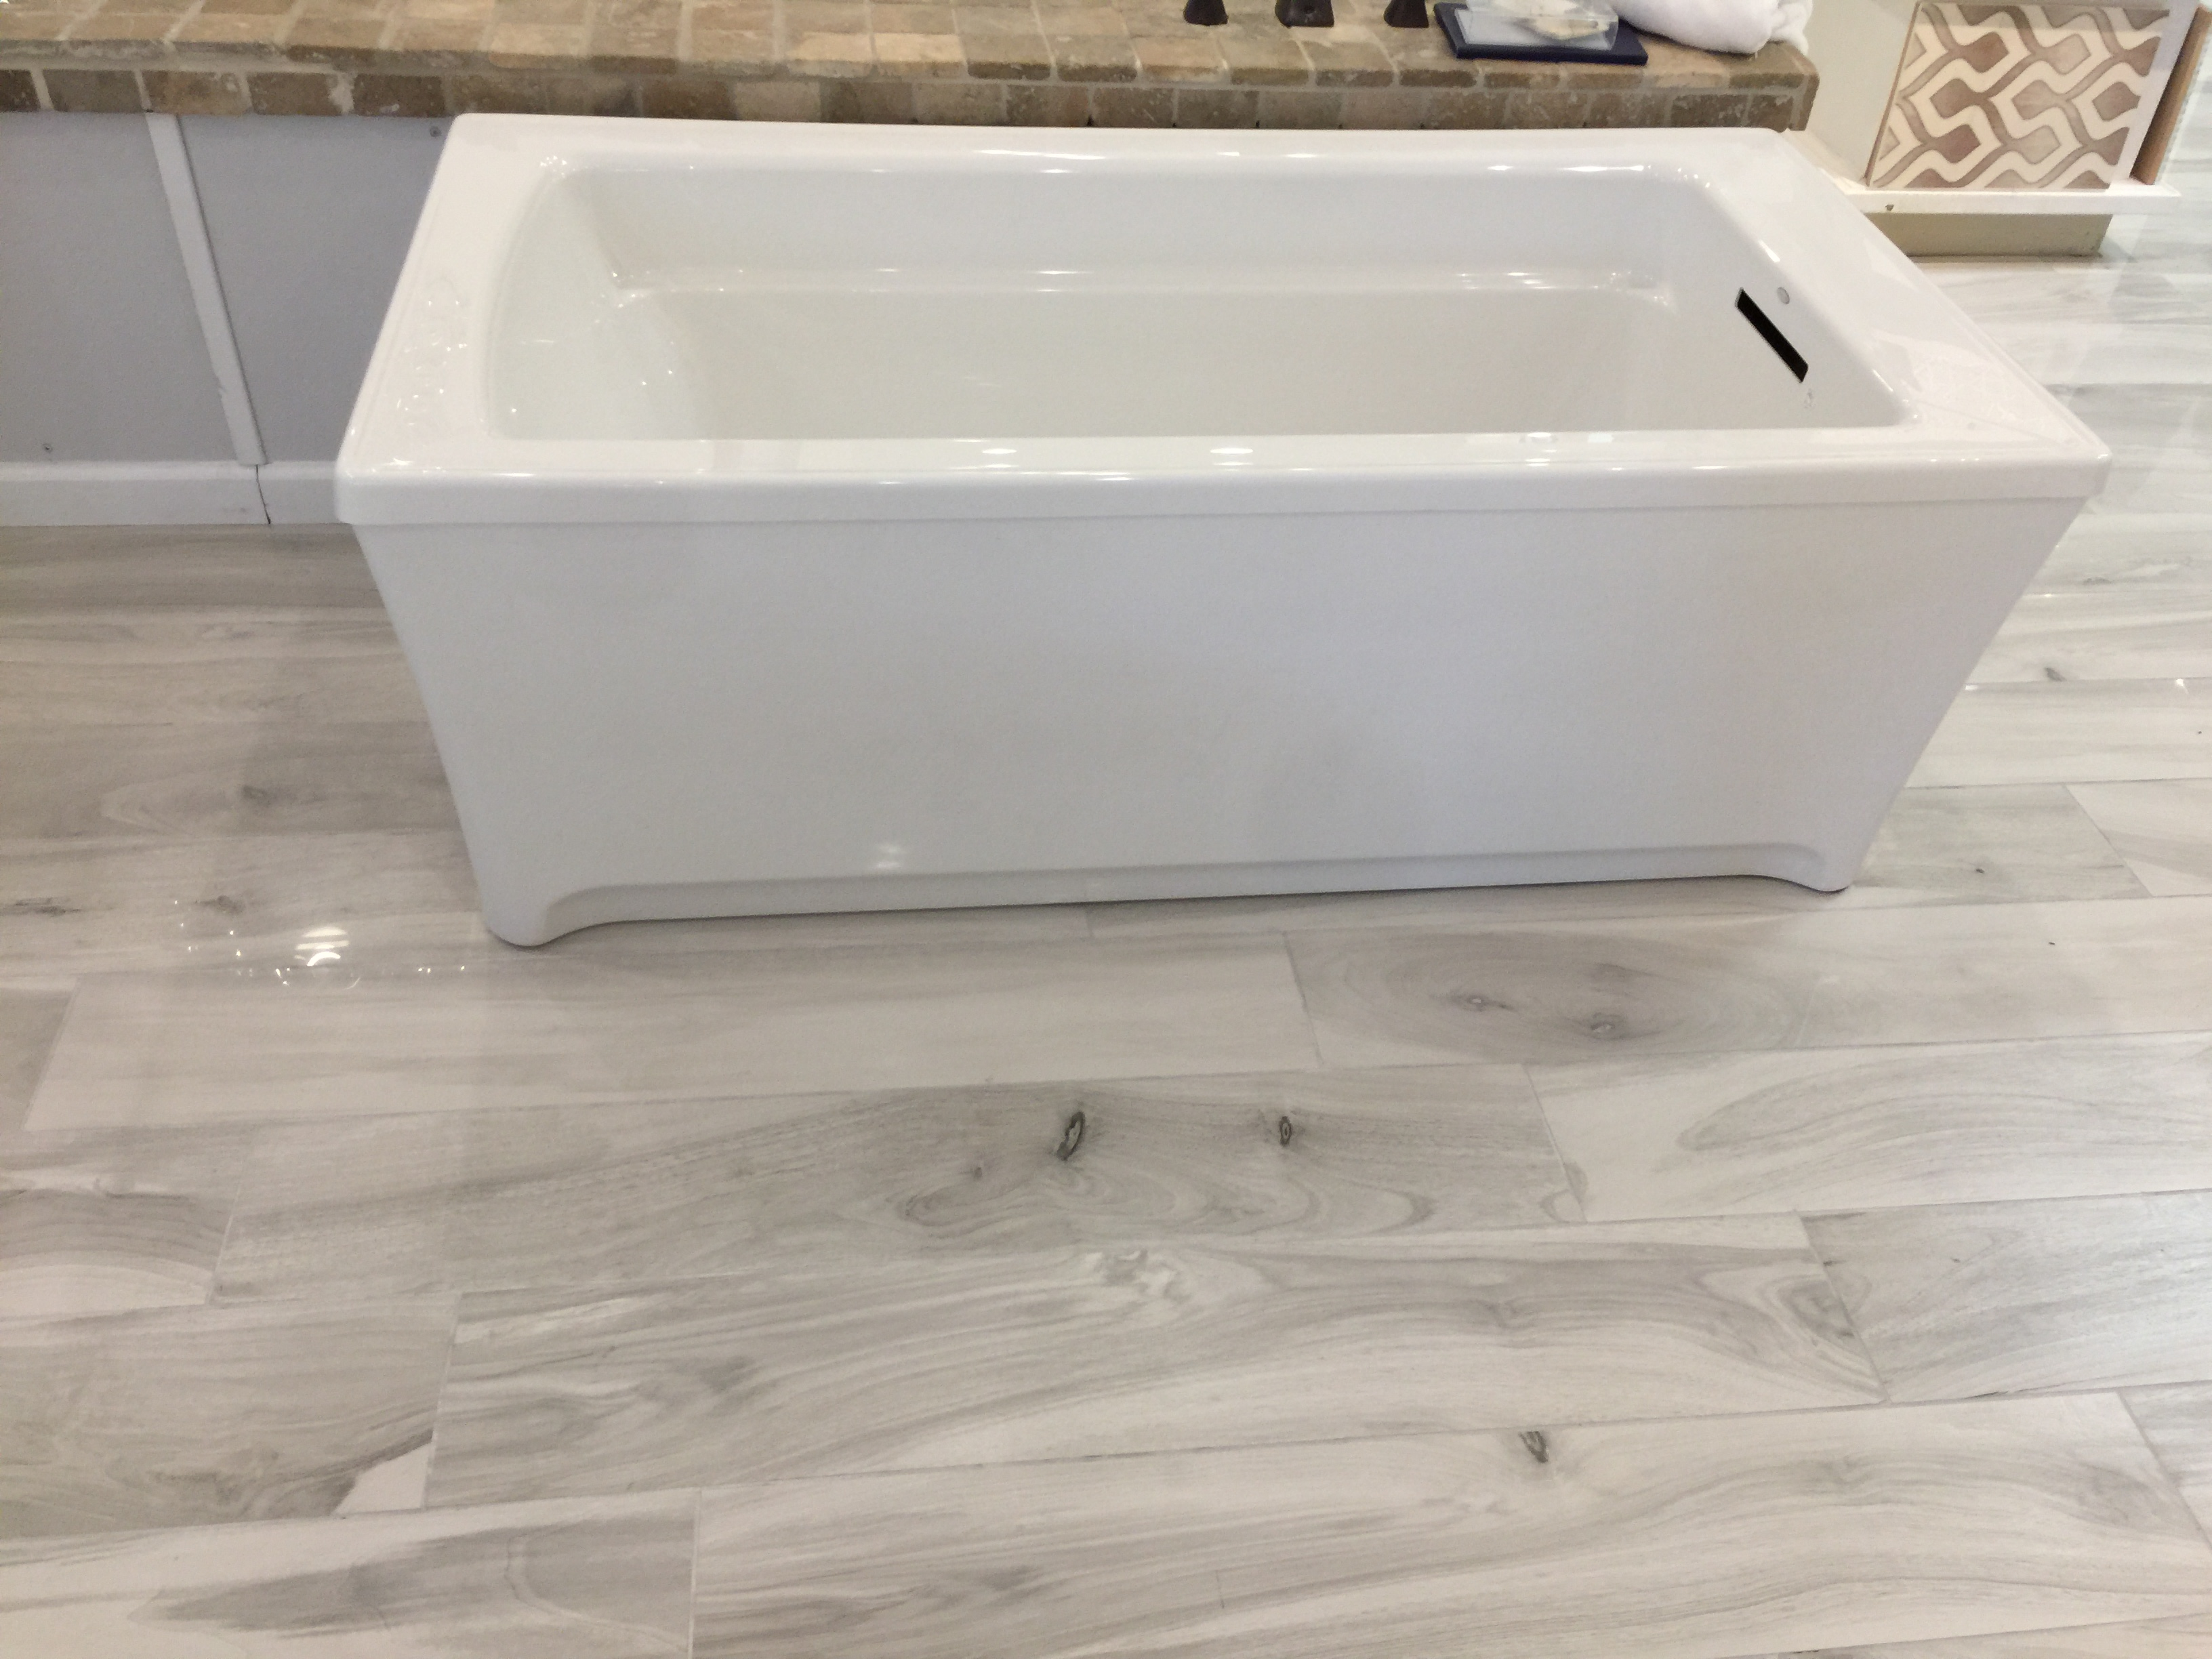 Kohler Free Standing White Archer Tub – Nicklas Supply